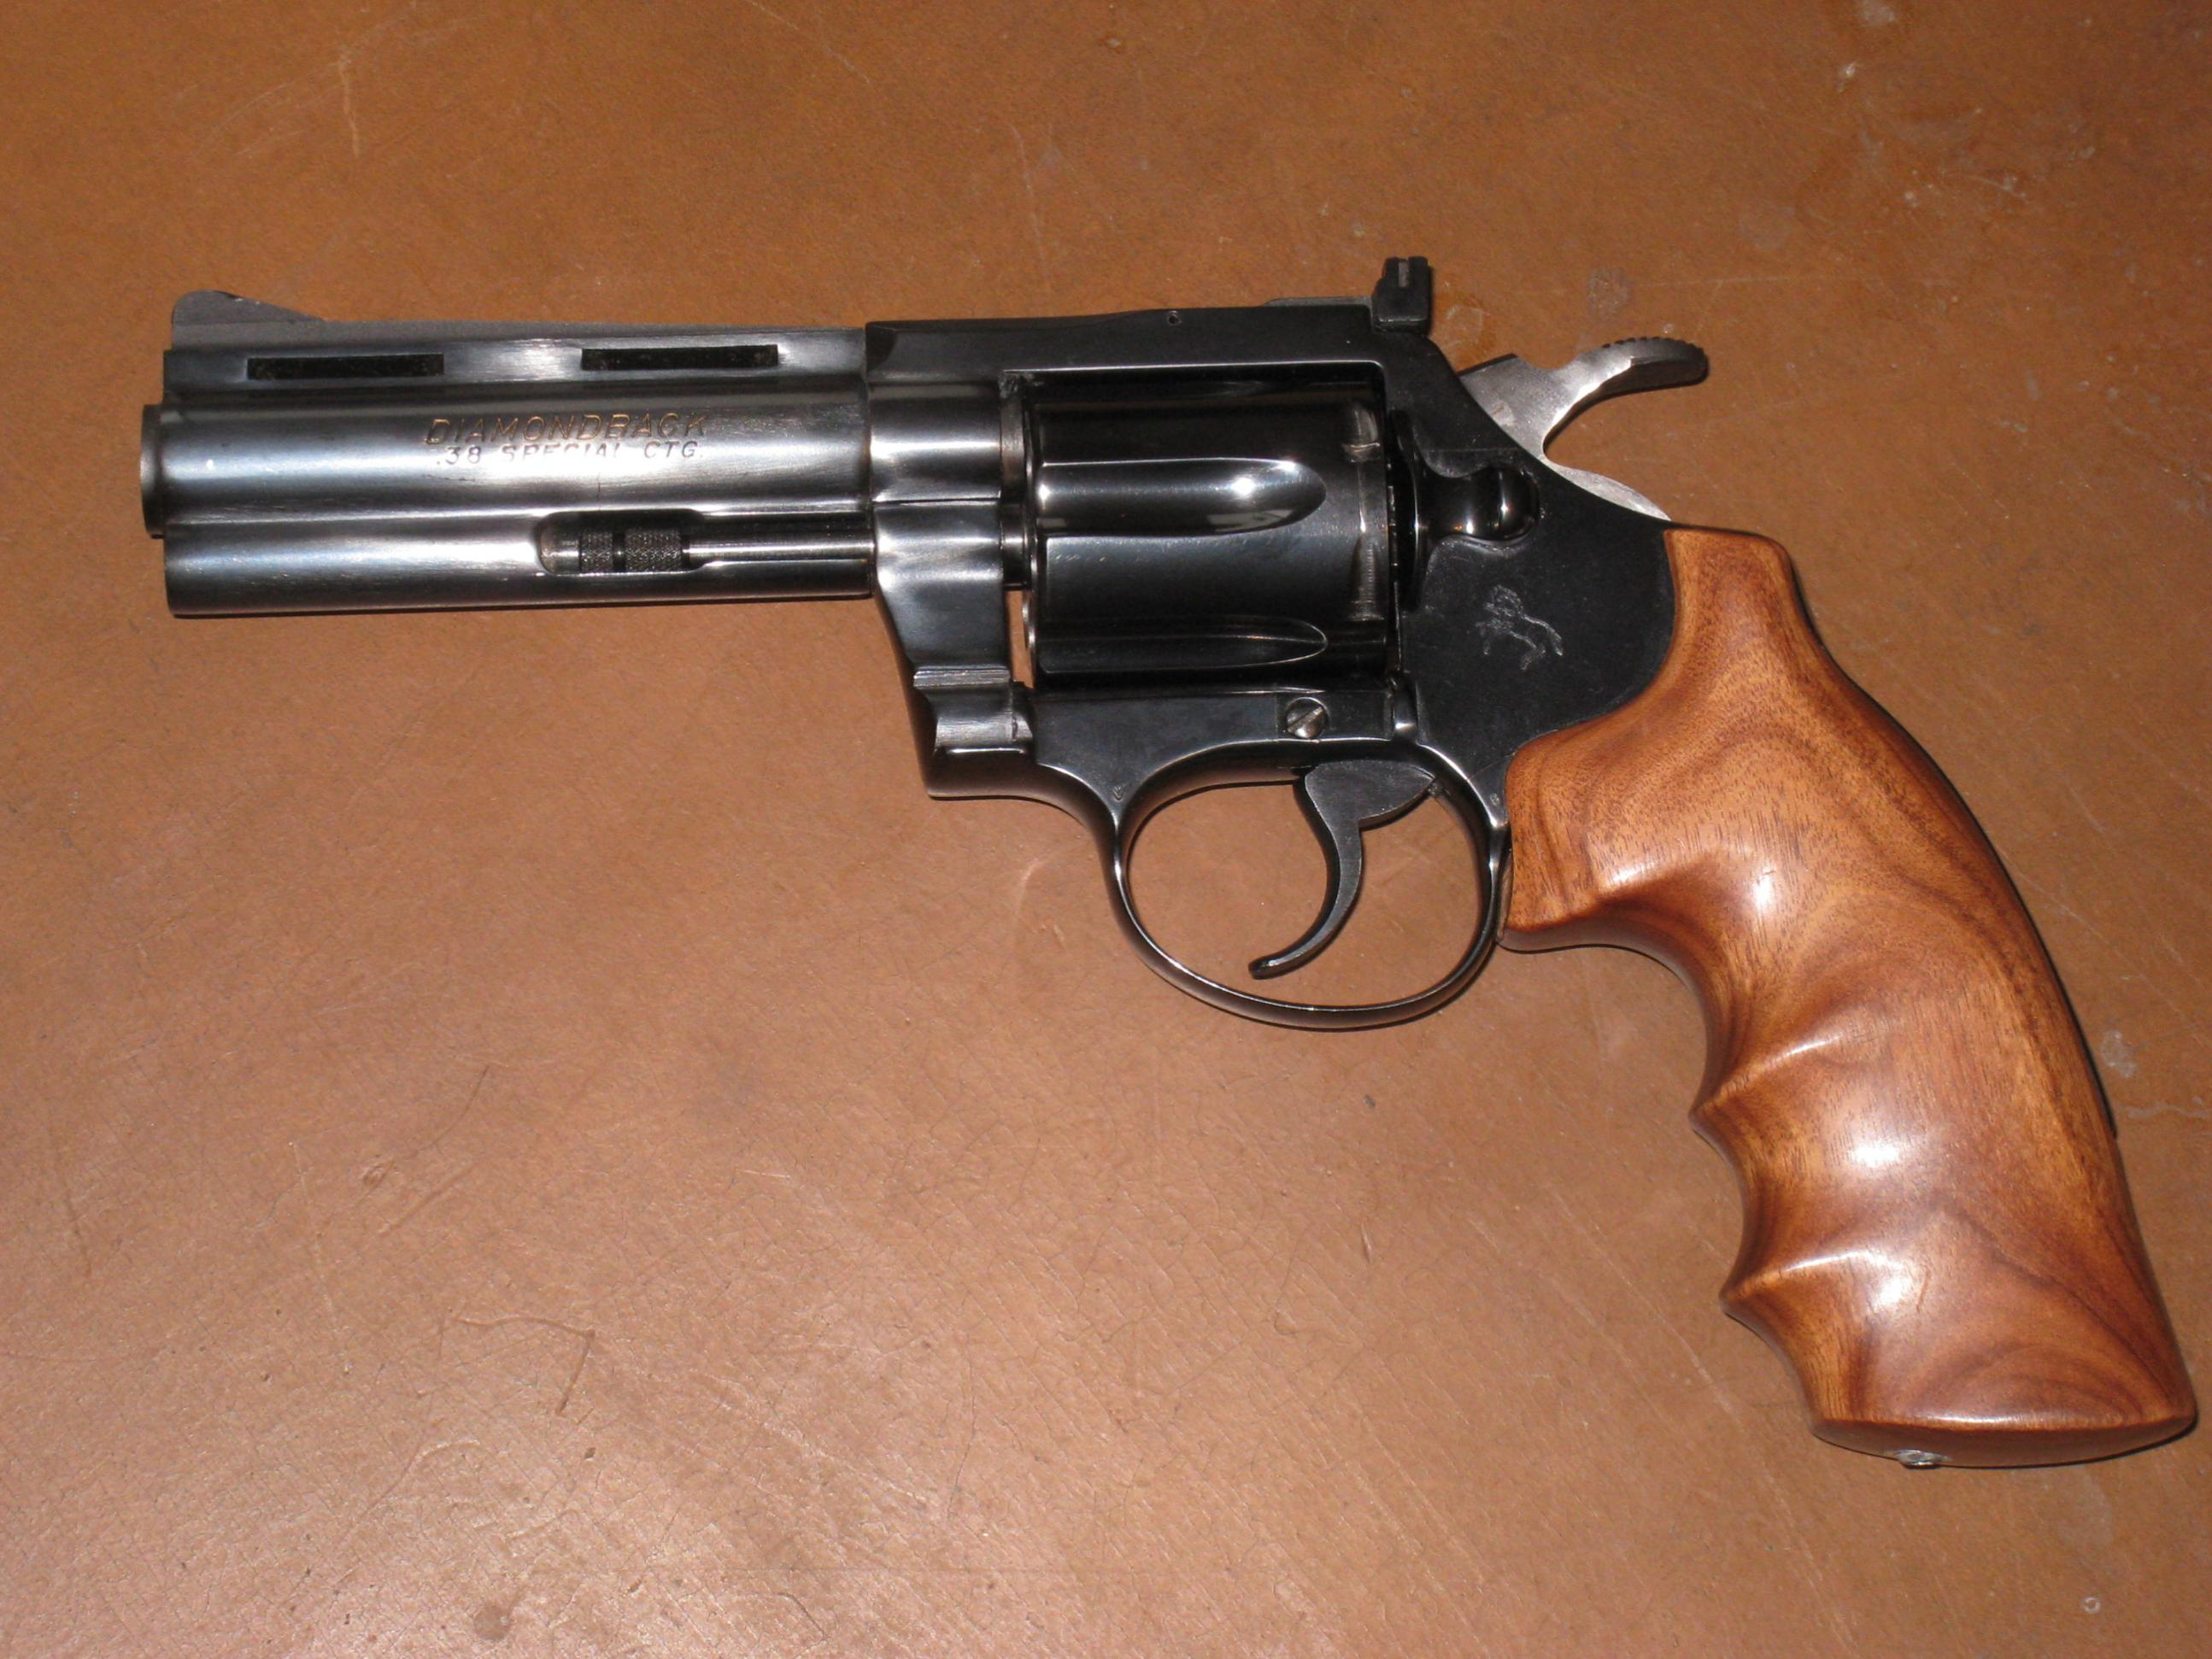 Does Anyone Out There Take Colt Revolvers Seriously?-picture-018.jpg